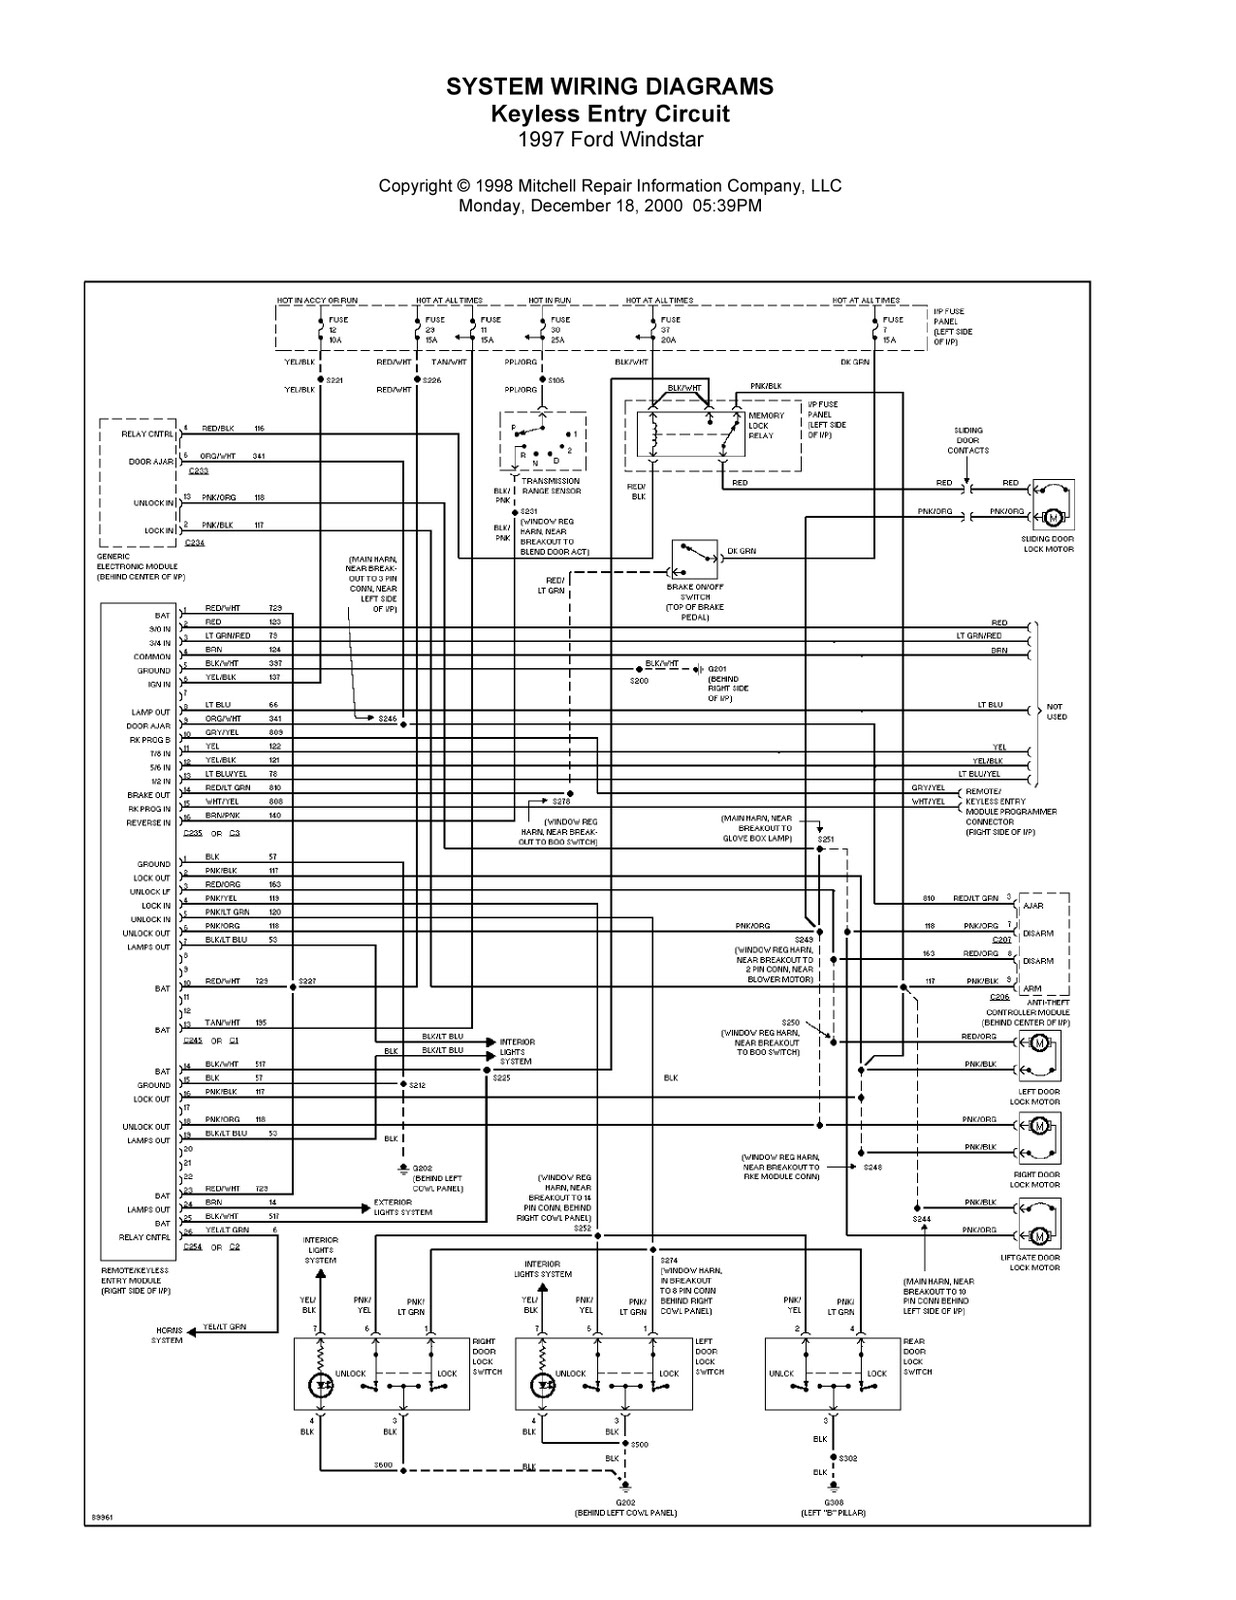 1997 ford windstar complete system wiring diagrams ... 1997 ford windstar fuse box diagram